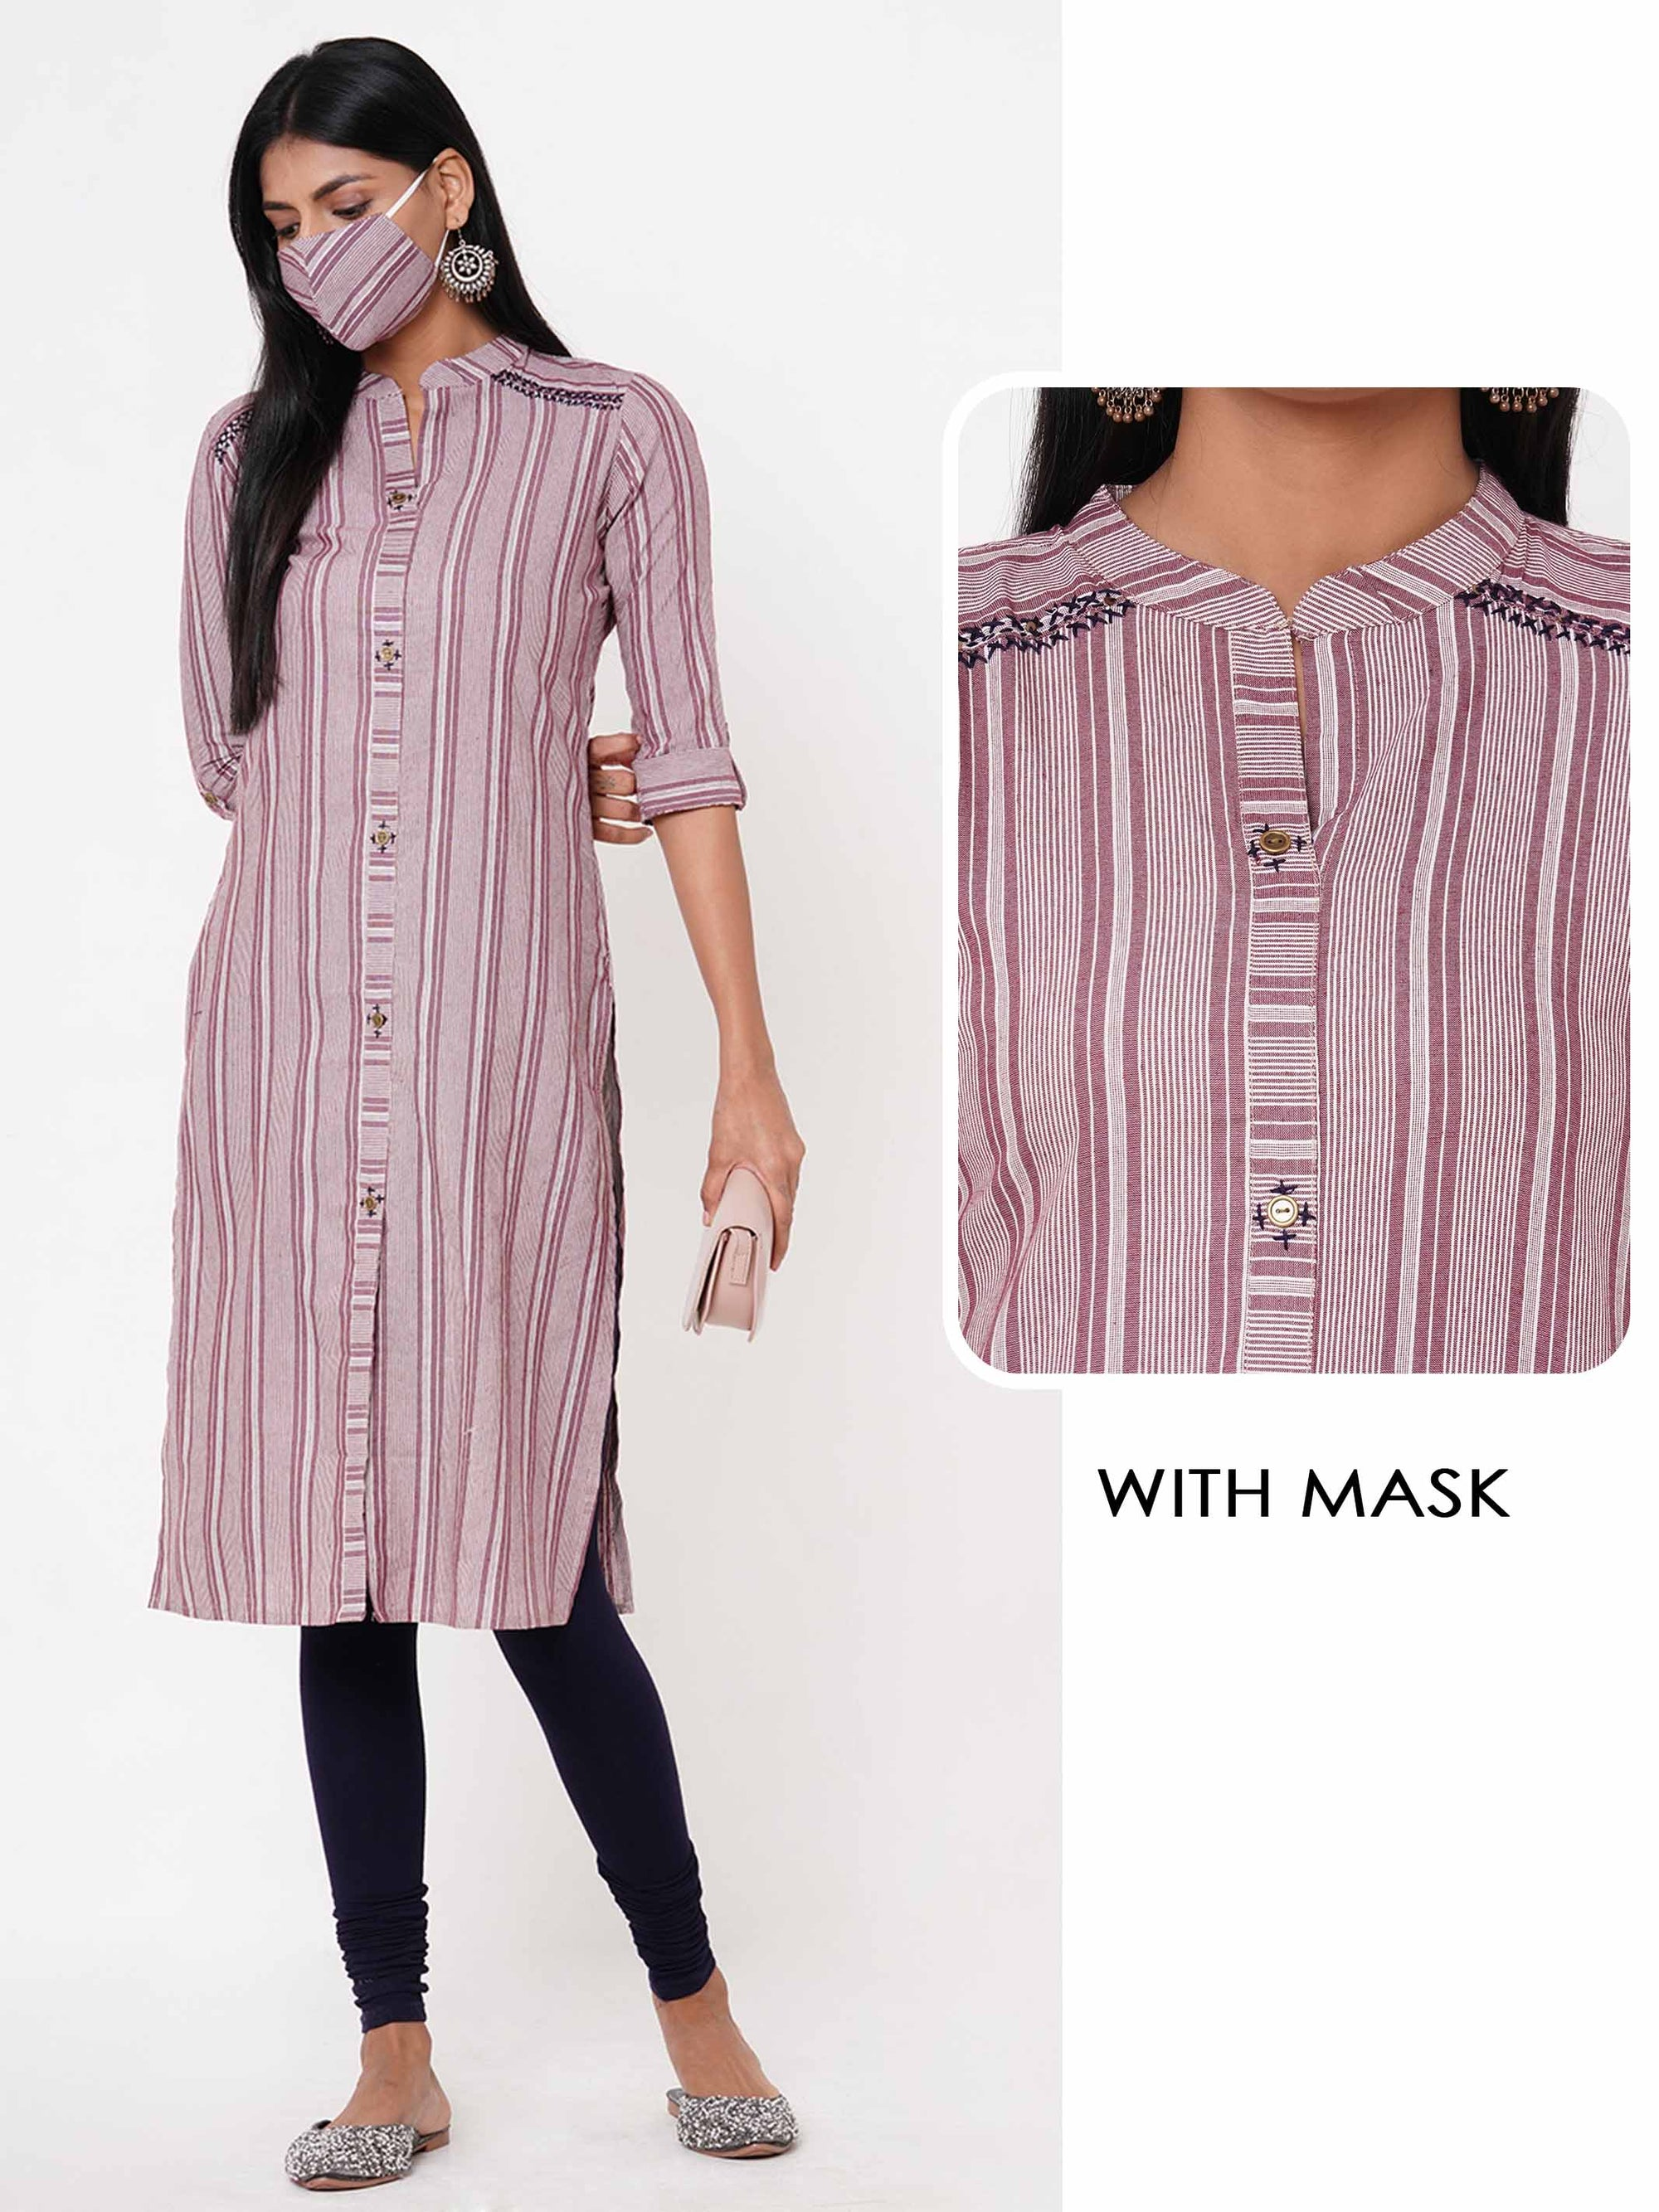 Woven Striped Kurta with Matching 2 Ply Mask – Rust Pink